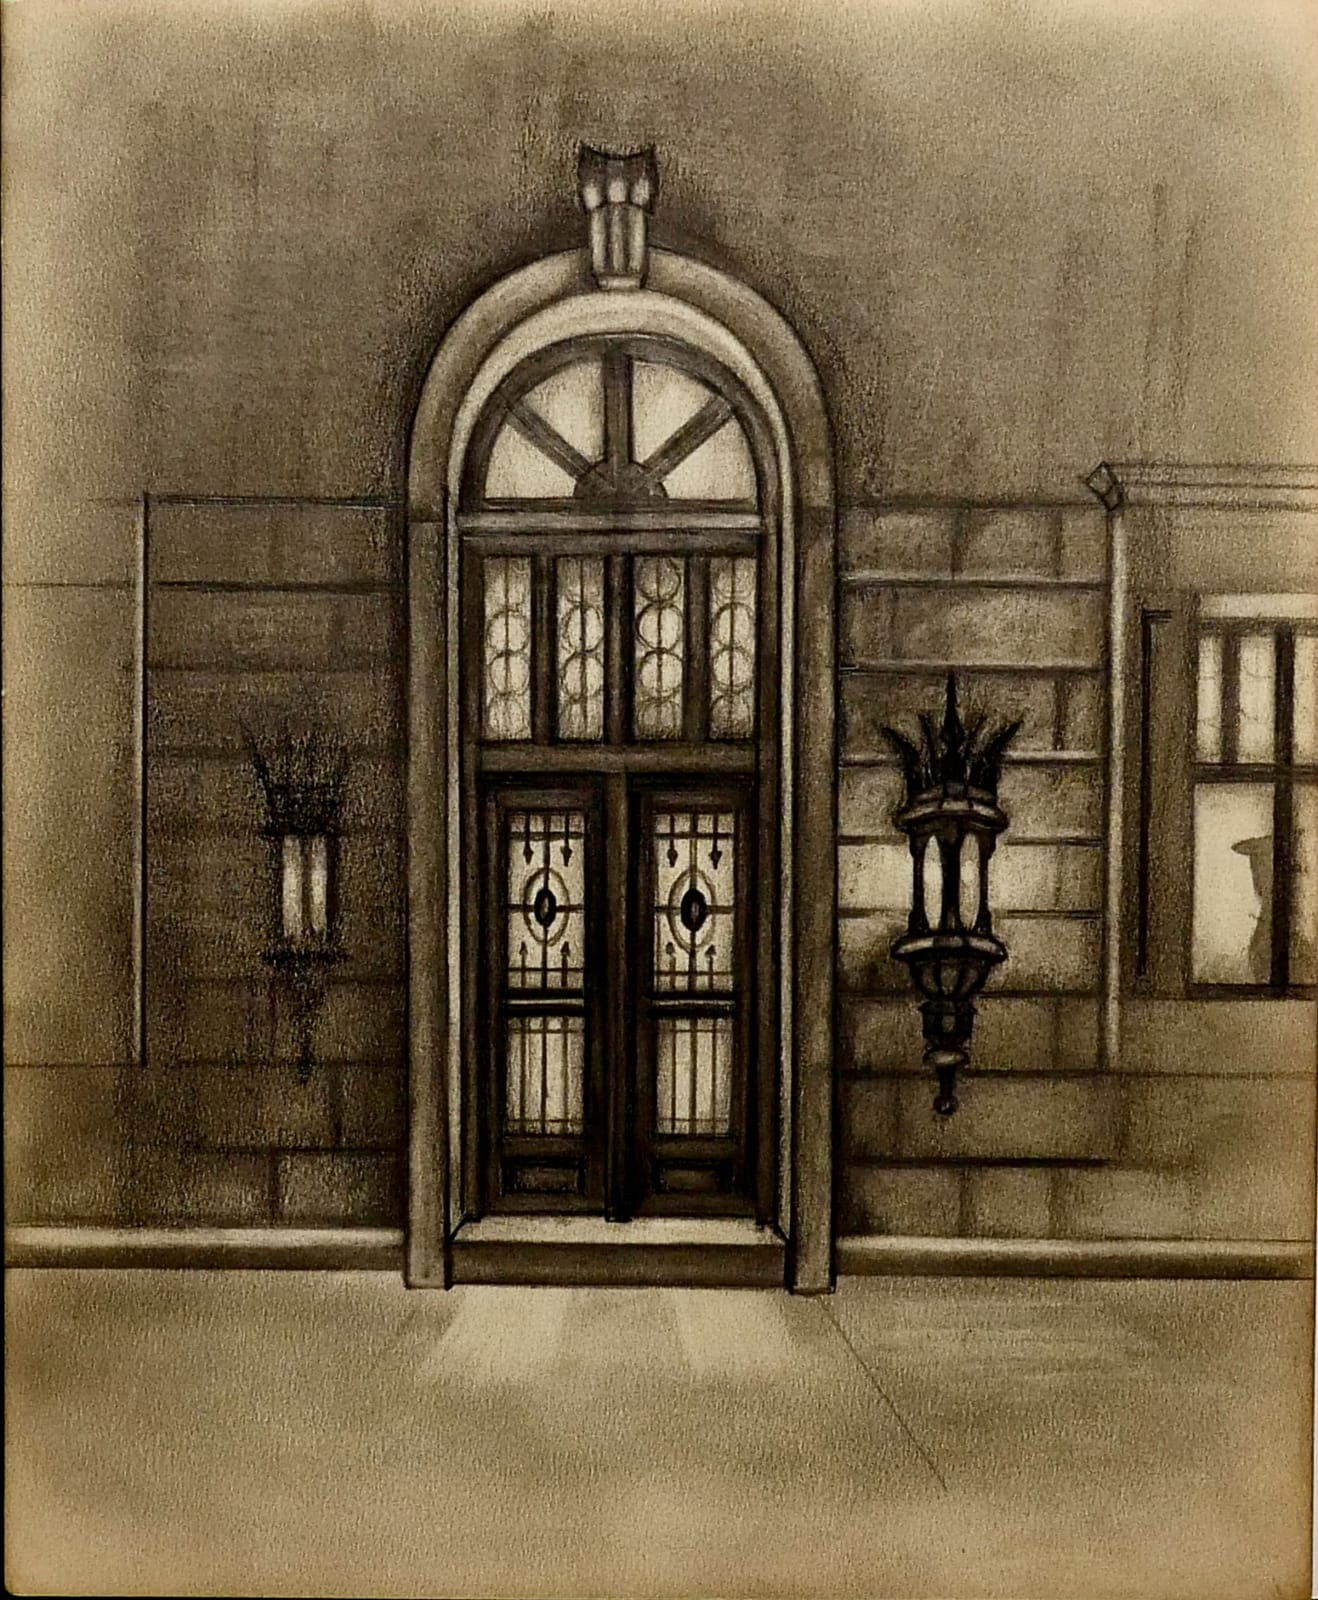 Entrance to Lou Holtz's restaurant at night ca. 1970s Pencil on sketch paper 9 3/4 x 8 in (RK 125) $5,000